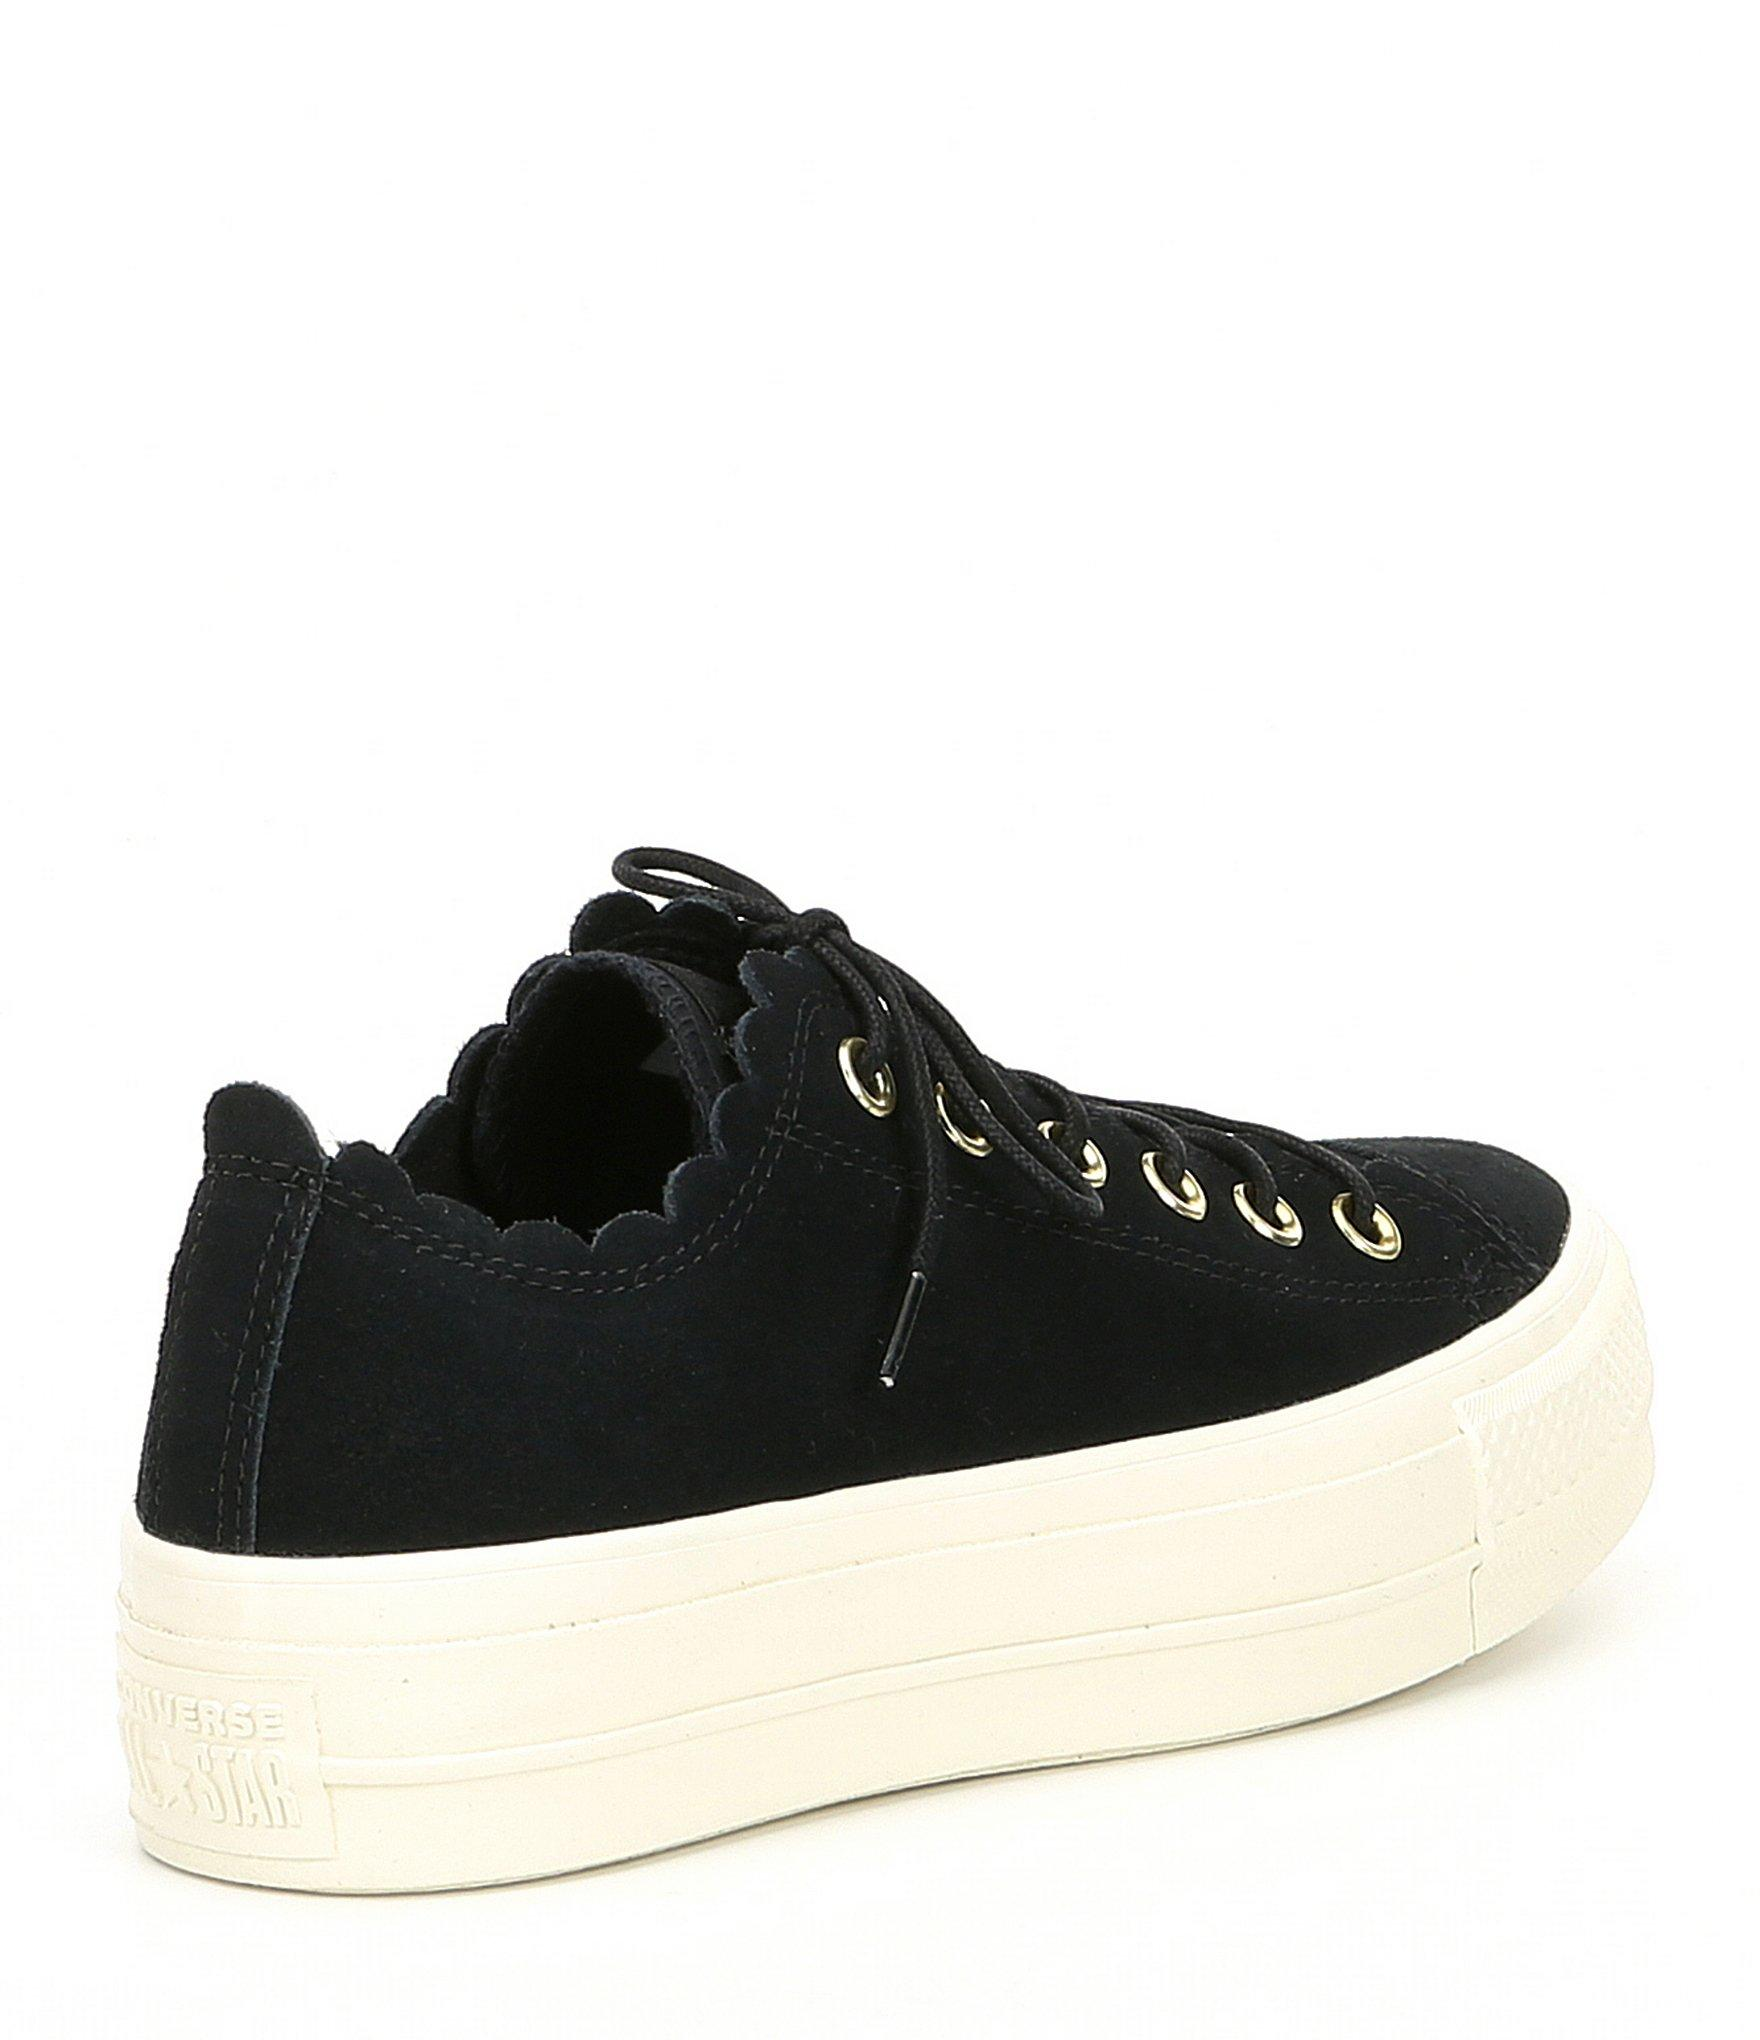 f649827cb660 Converse - Black Women s Chuck Taylor All Star Frilly Thrills Platform  Sneakers - Lyst. View fullscreen